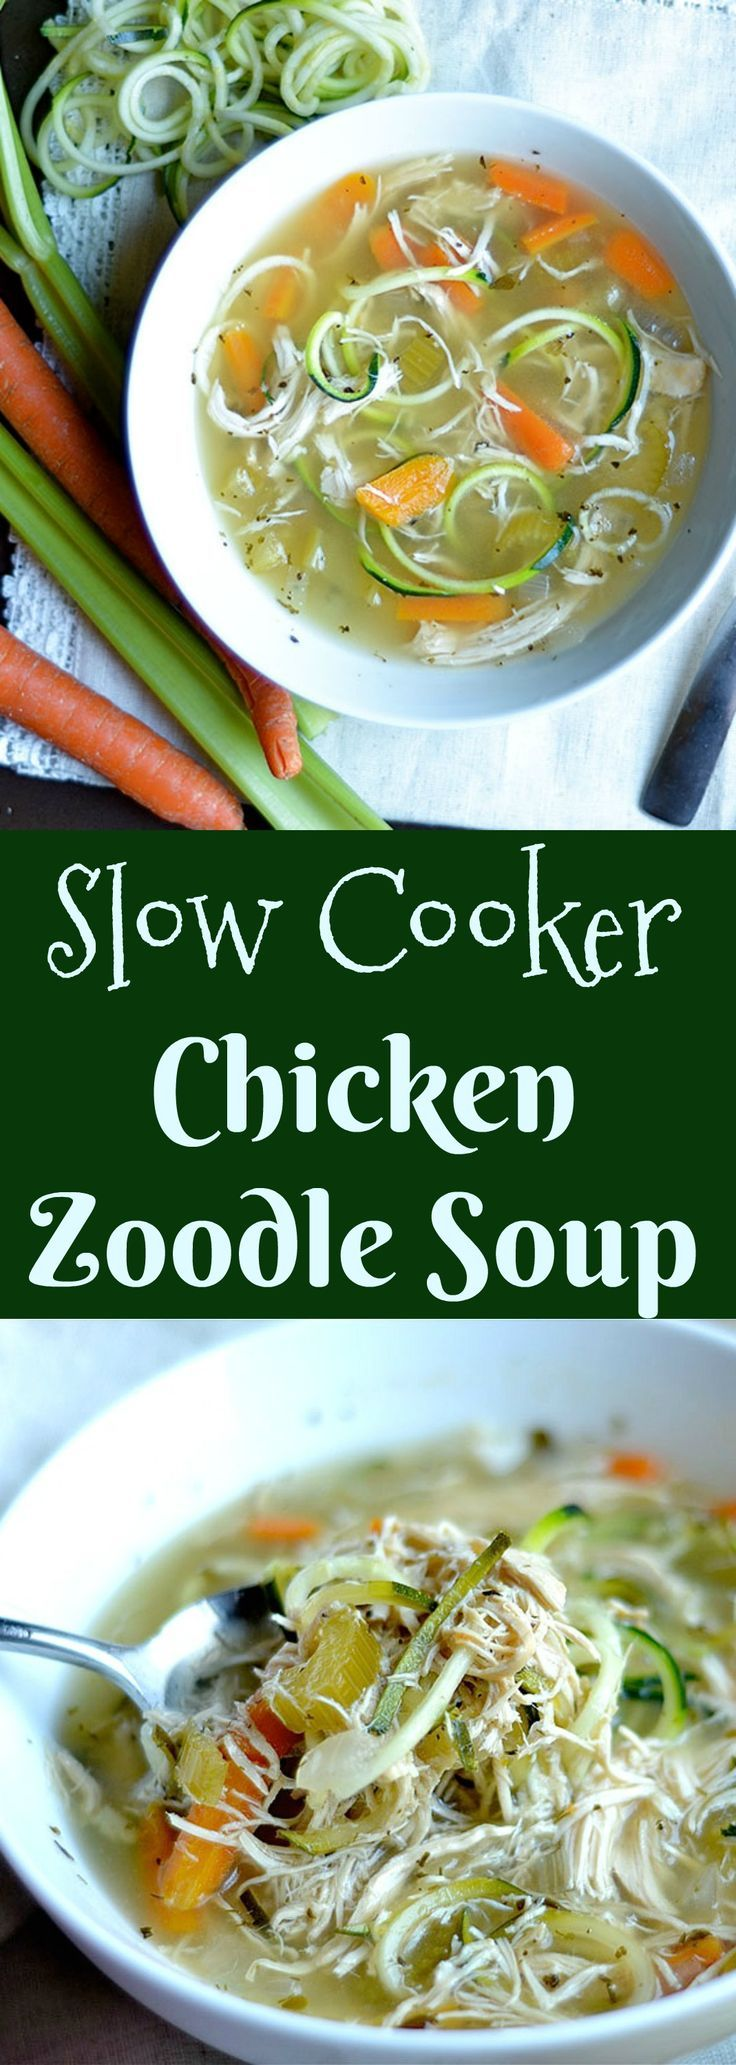 Super easy classic soup that is made in your Slow Cooker! Also perfect for Turkey leftovers!